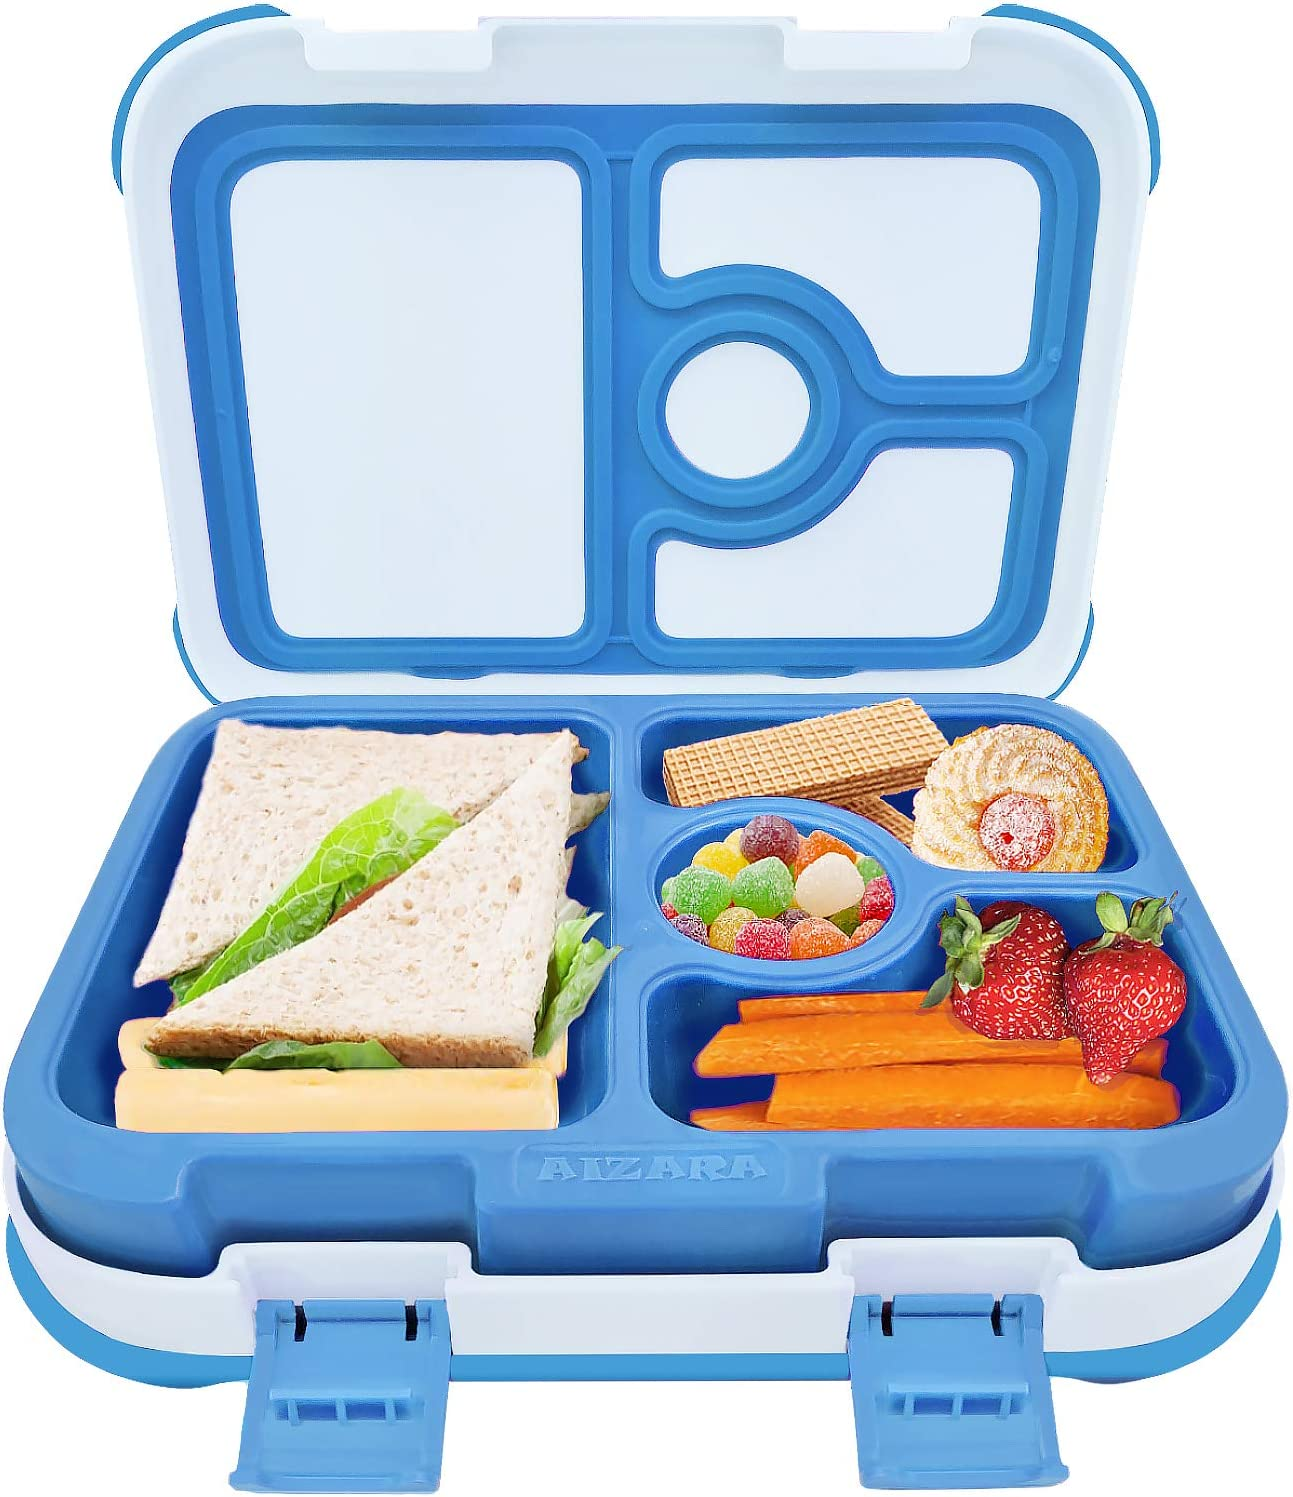 Aitsite Bento Box for Kids On-The-Go Children Lunch Box with 4 2 Compartments Durable and Leak-proof Meal Prep Container BPA-Free Ideal for Nursery and School